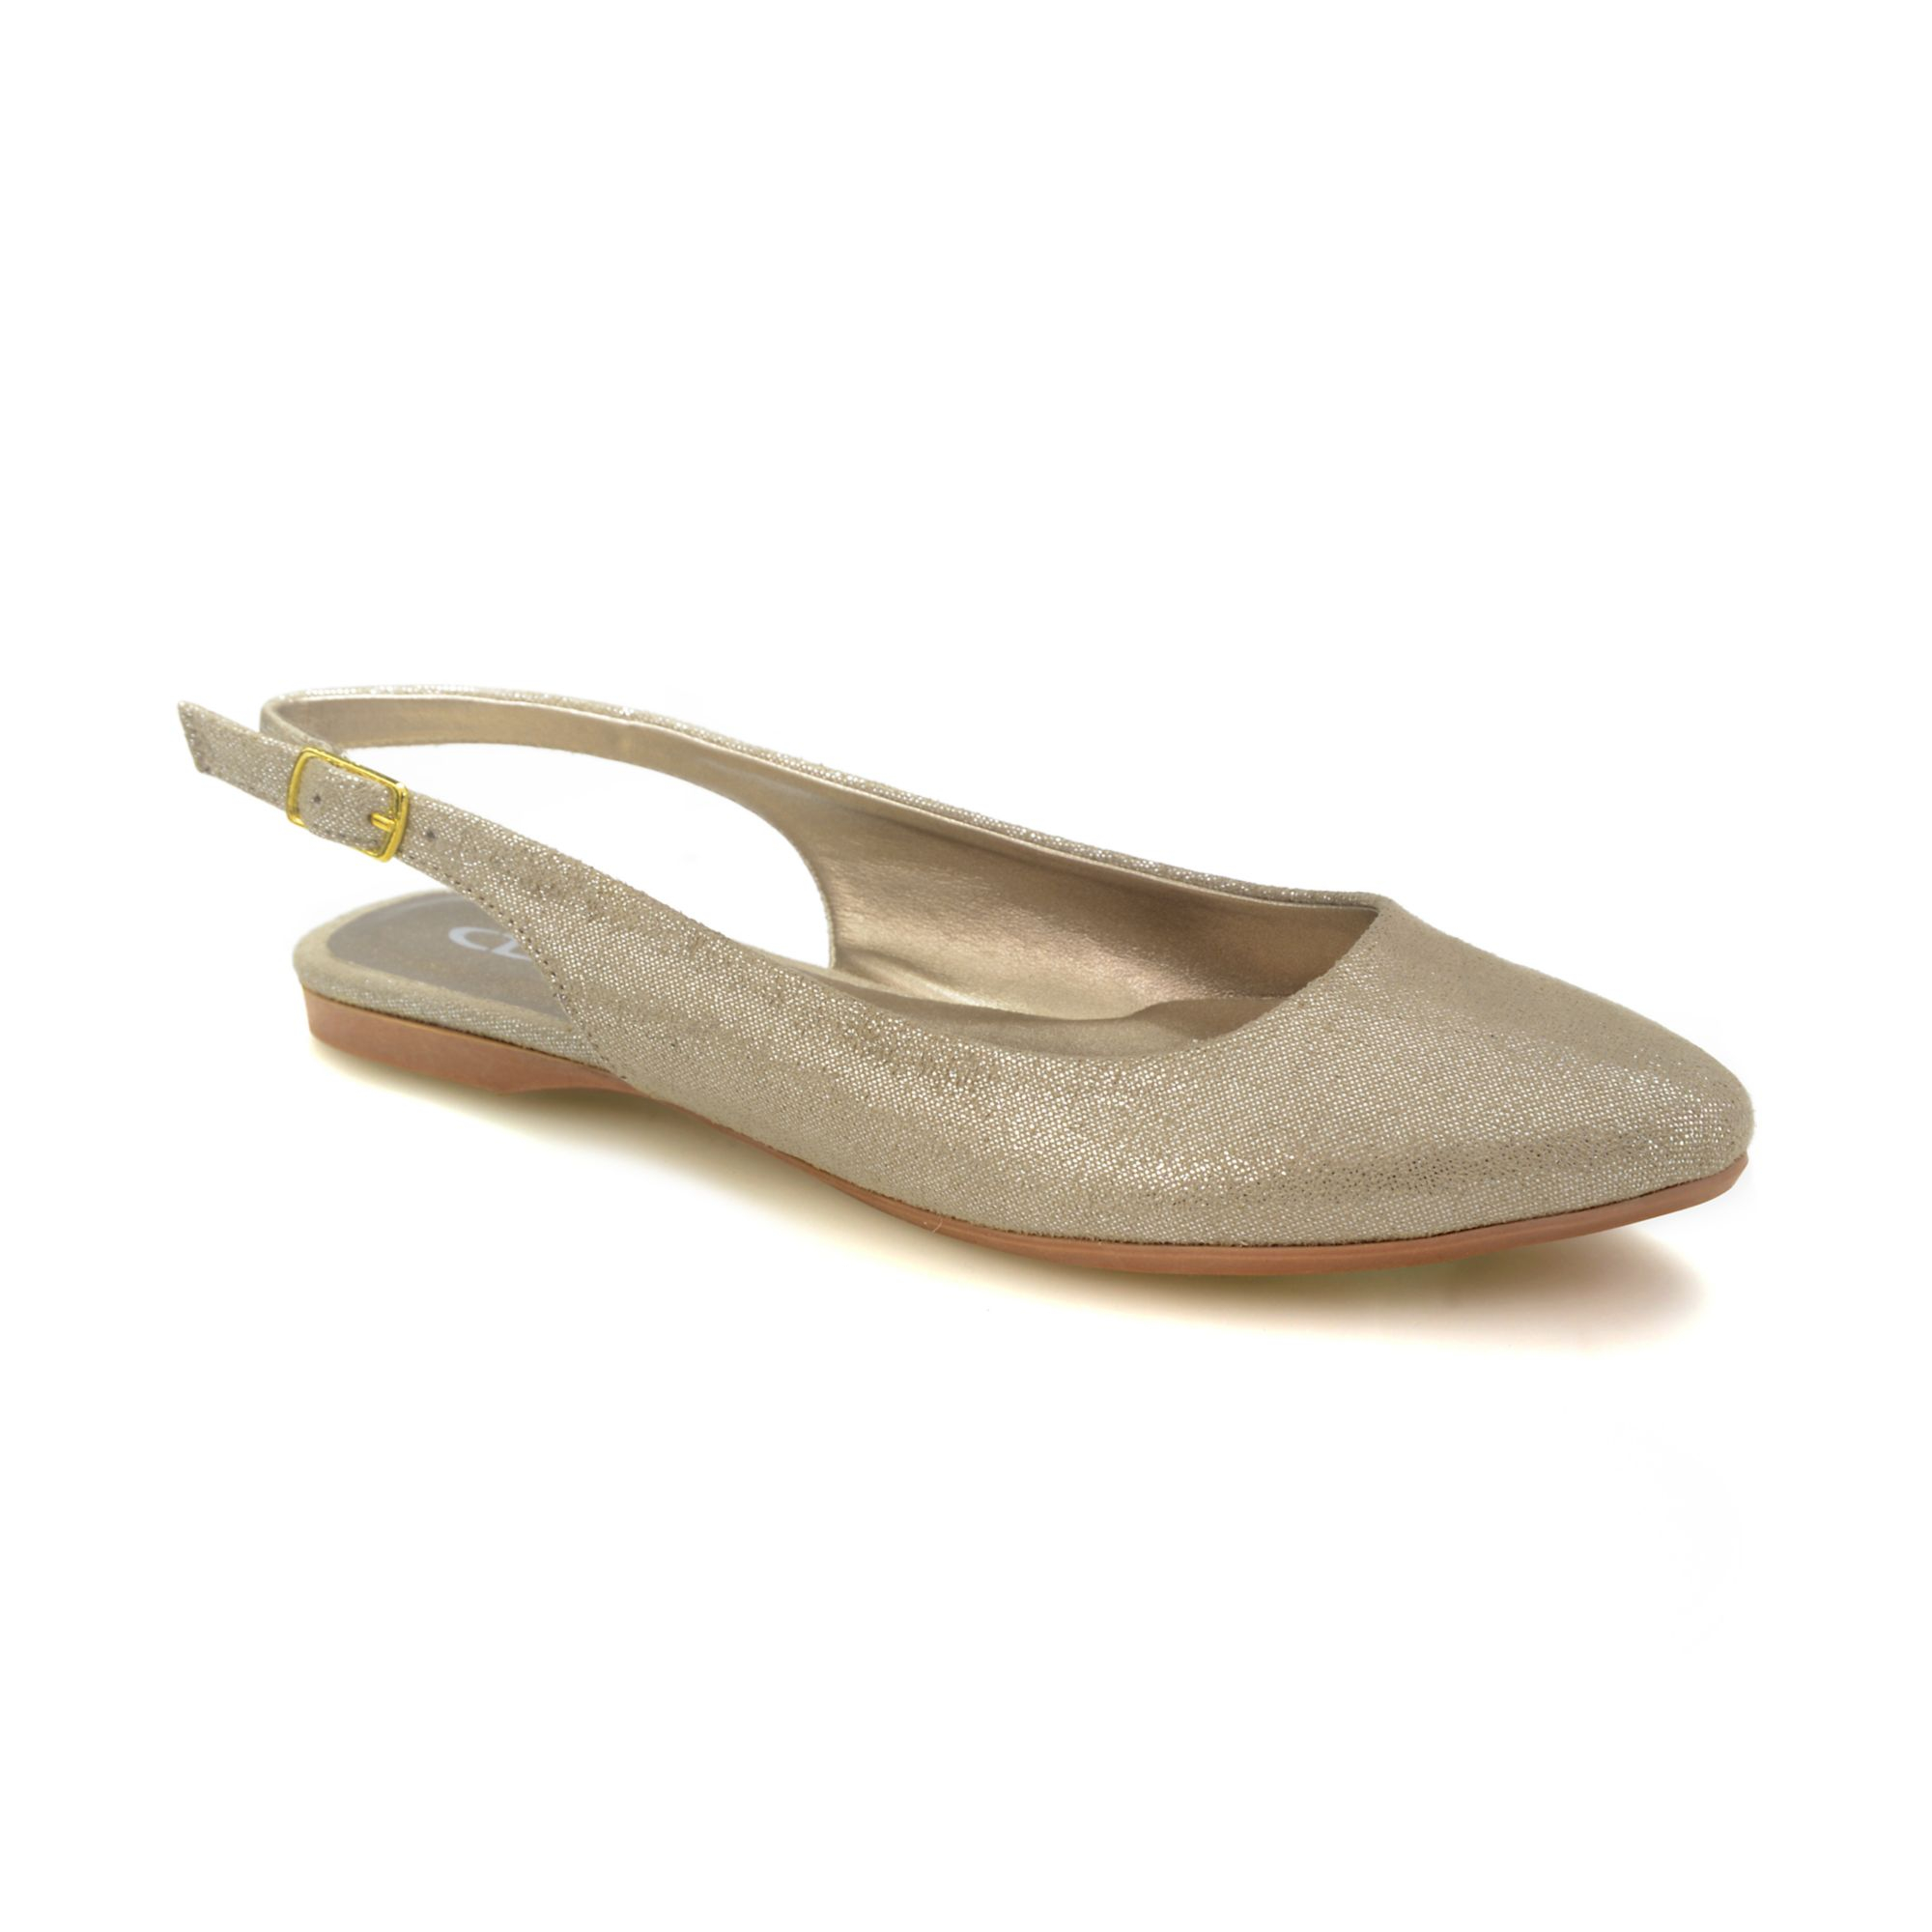 Chinese Laundry Brilliance Slingback Flats In Gold Champagne Lyst